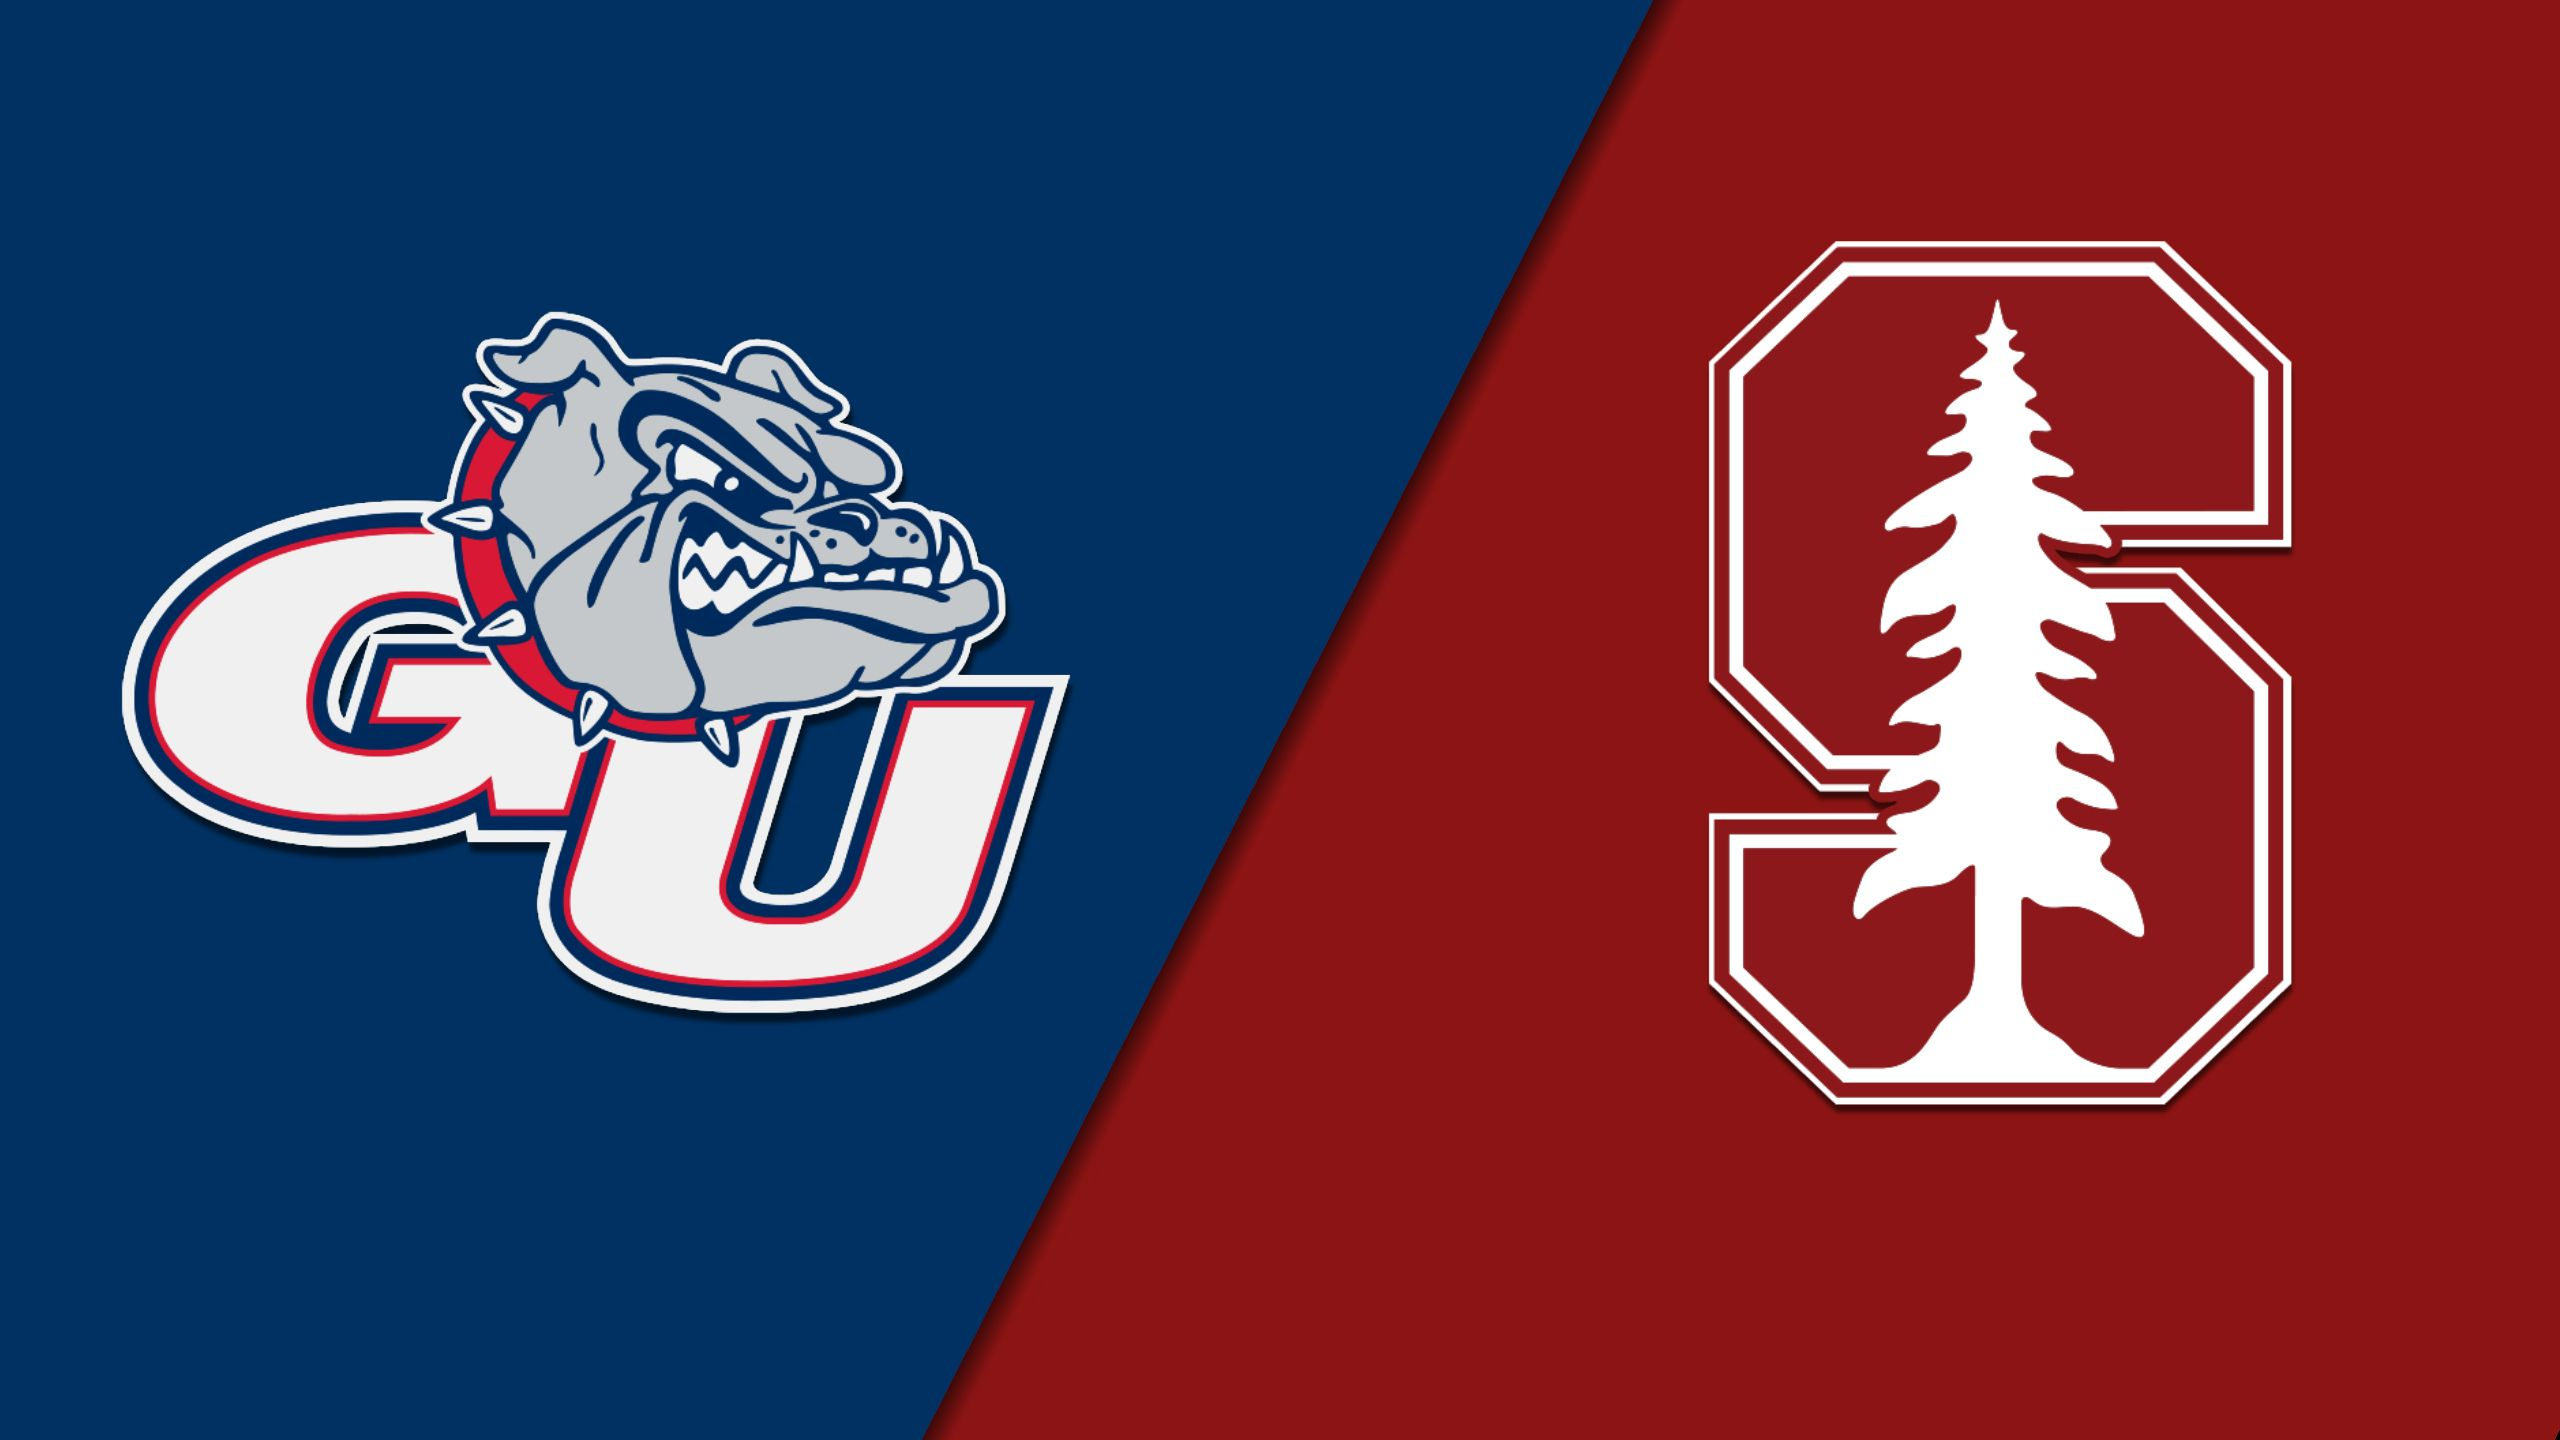 #13 Gonzaga vs. #4 Stanford (First Round) (NCAA Women's Basketball Championship)